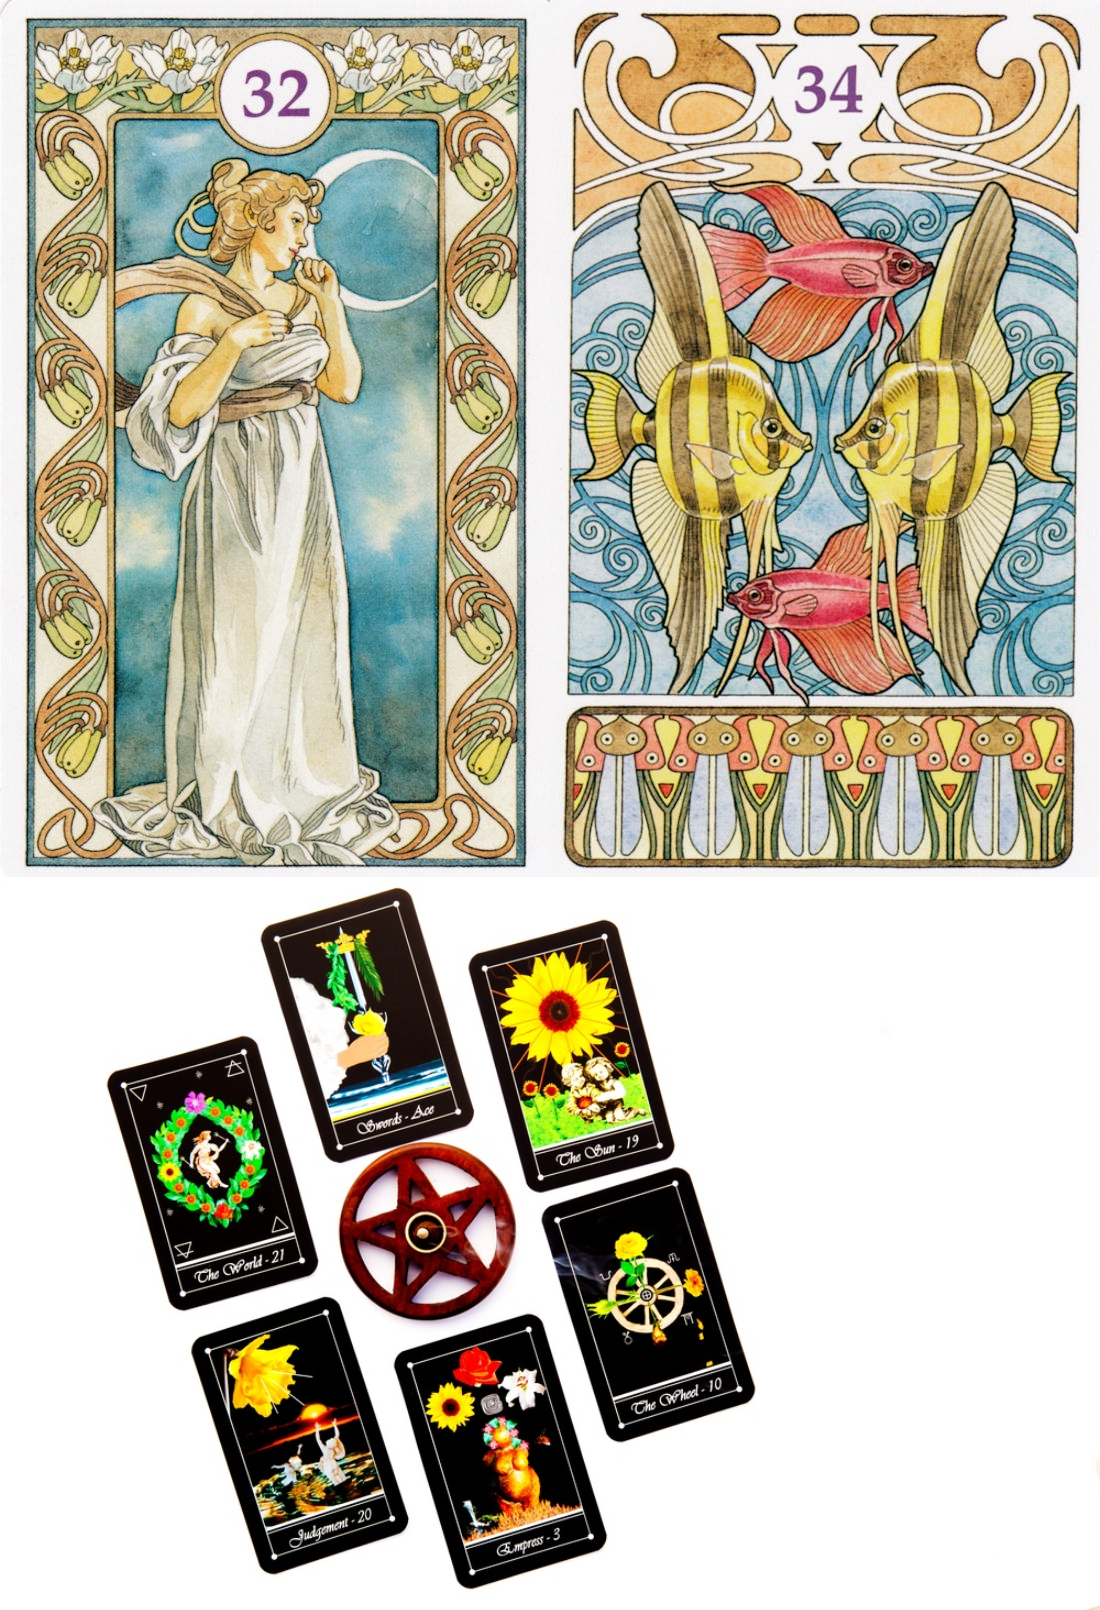 lenormand 9 card spread, lenormand cards and mystical